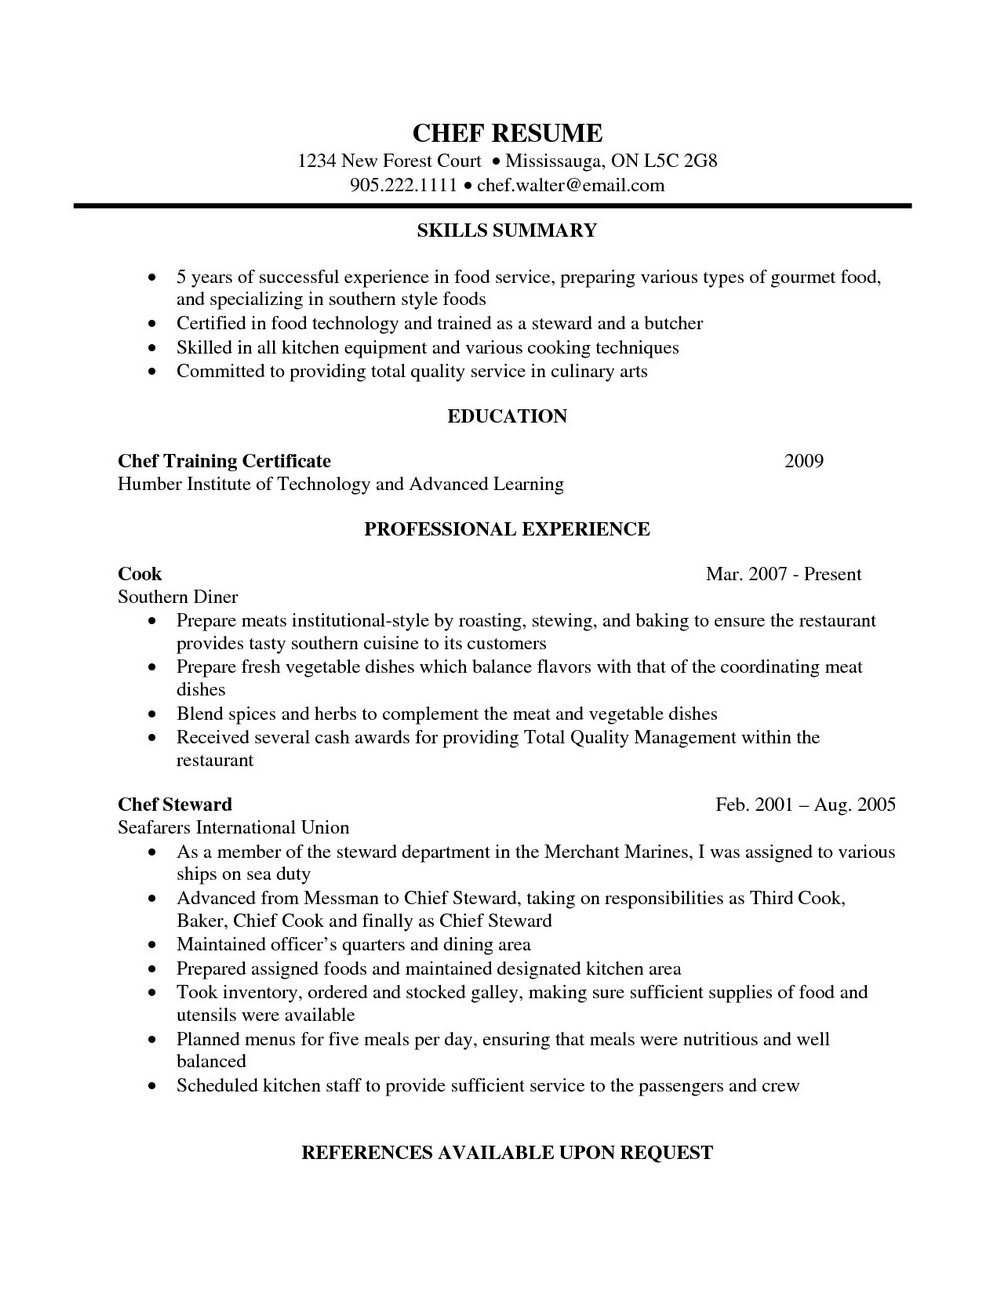 Pastry Chef Cv Template Mbm Legal